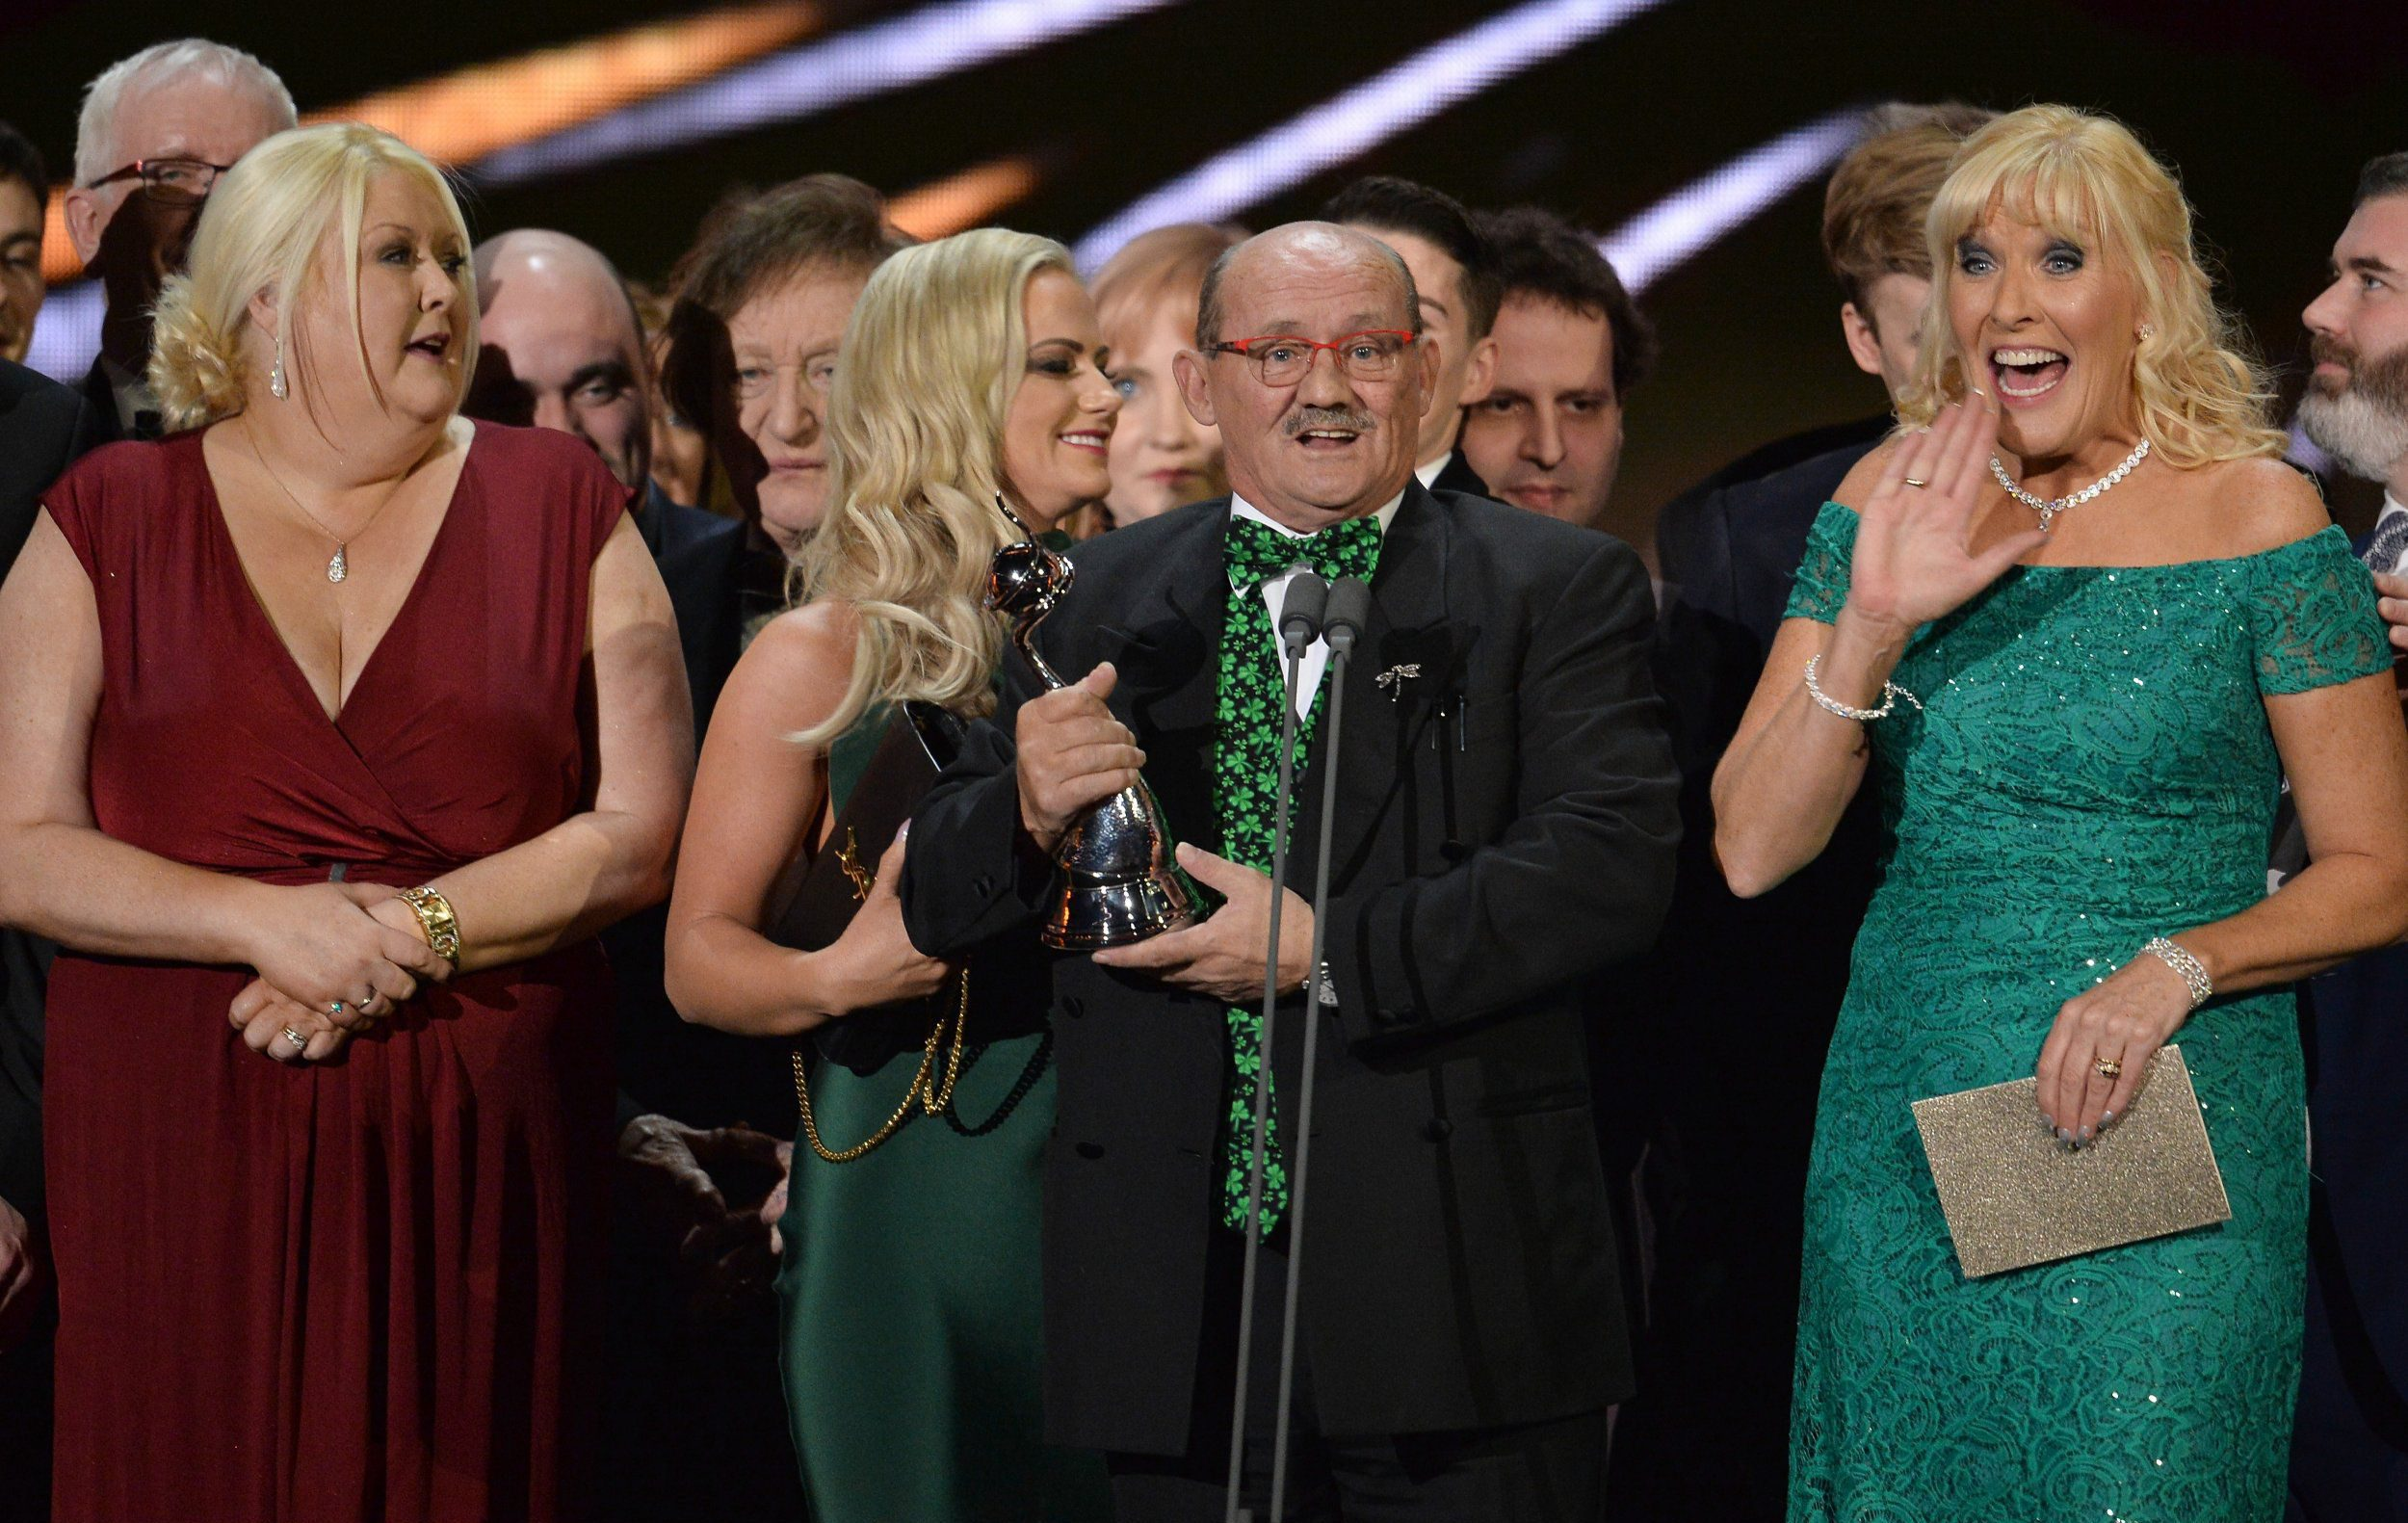 Turns out Mrs Brown's Boys wasn't booed at the National Television Awards after all